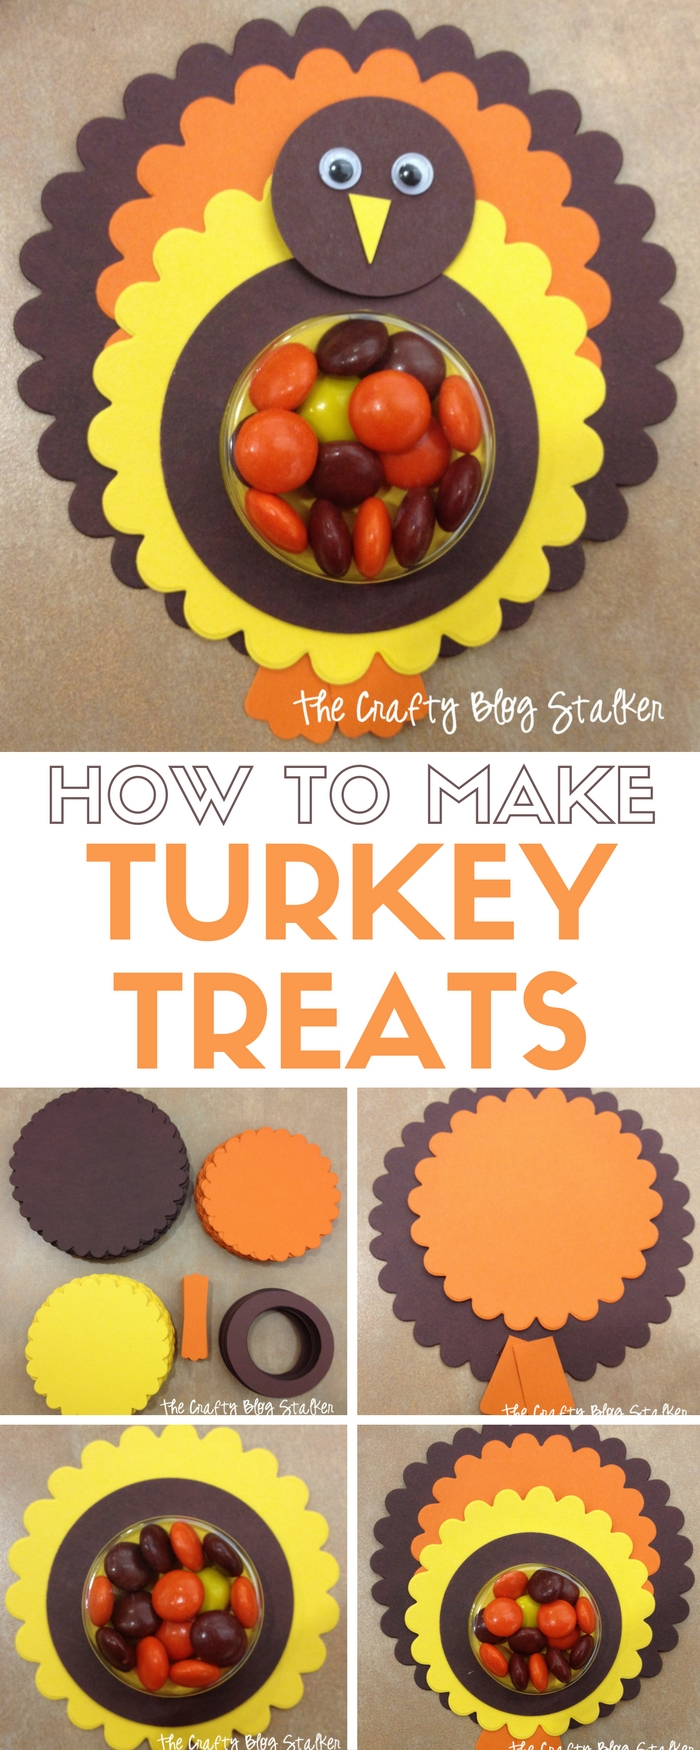 Make these Turkey Treats for friends and family. An easy DIY craft tutorial idea for Thanksgiving dinner, or a fun kids craft to keep the kids busy.